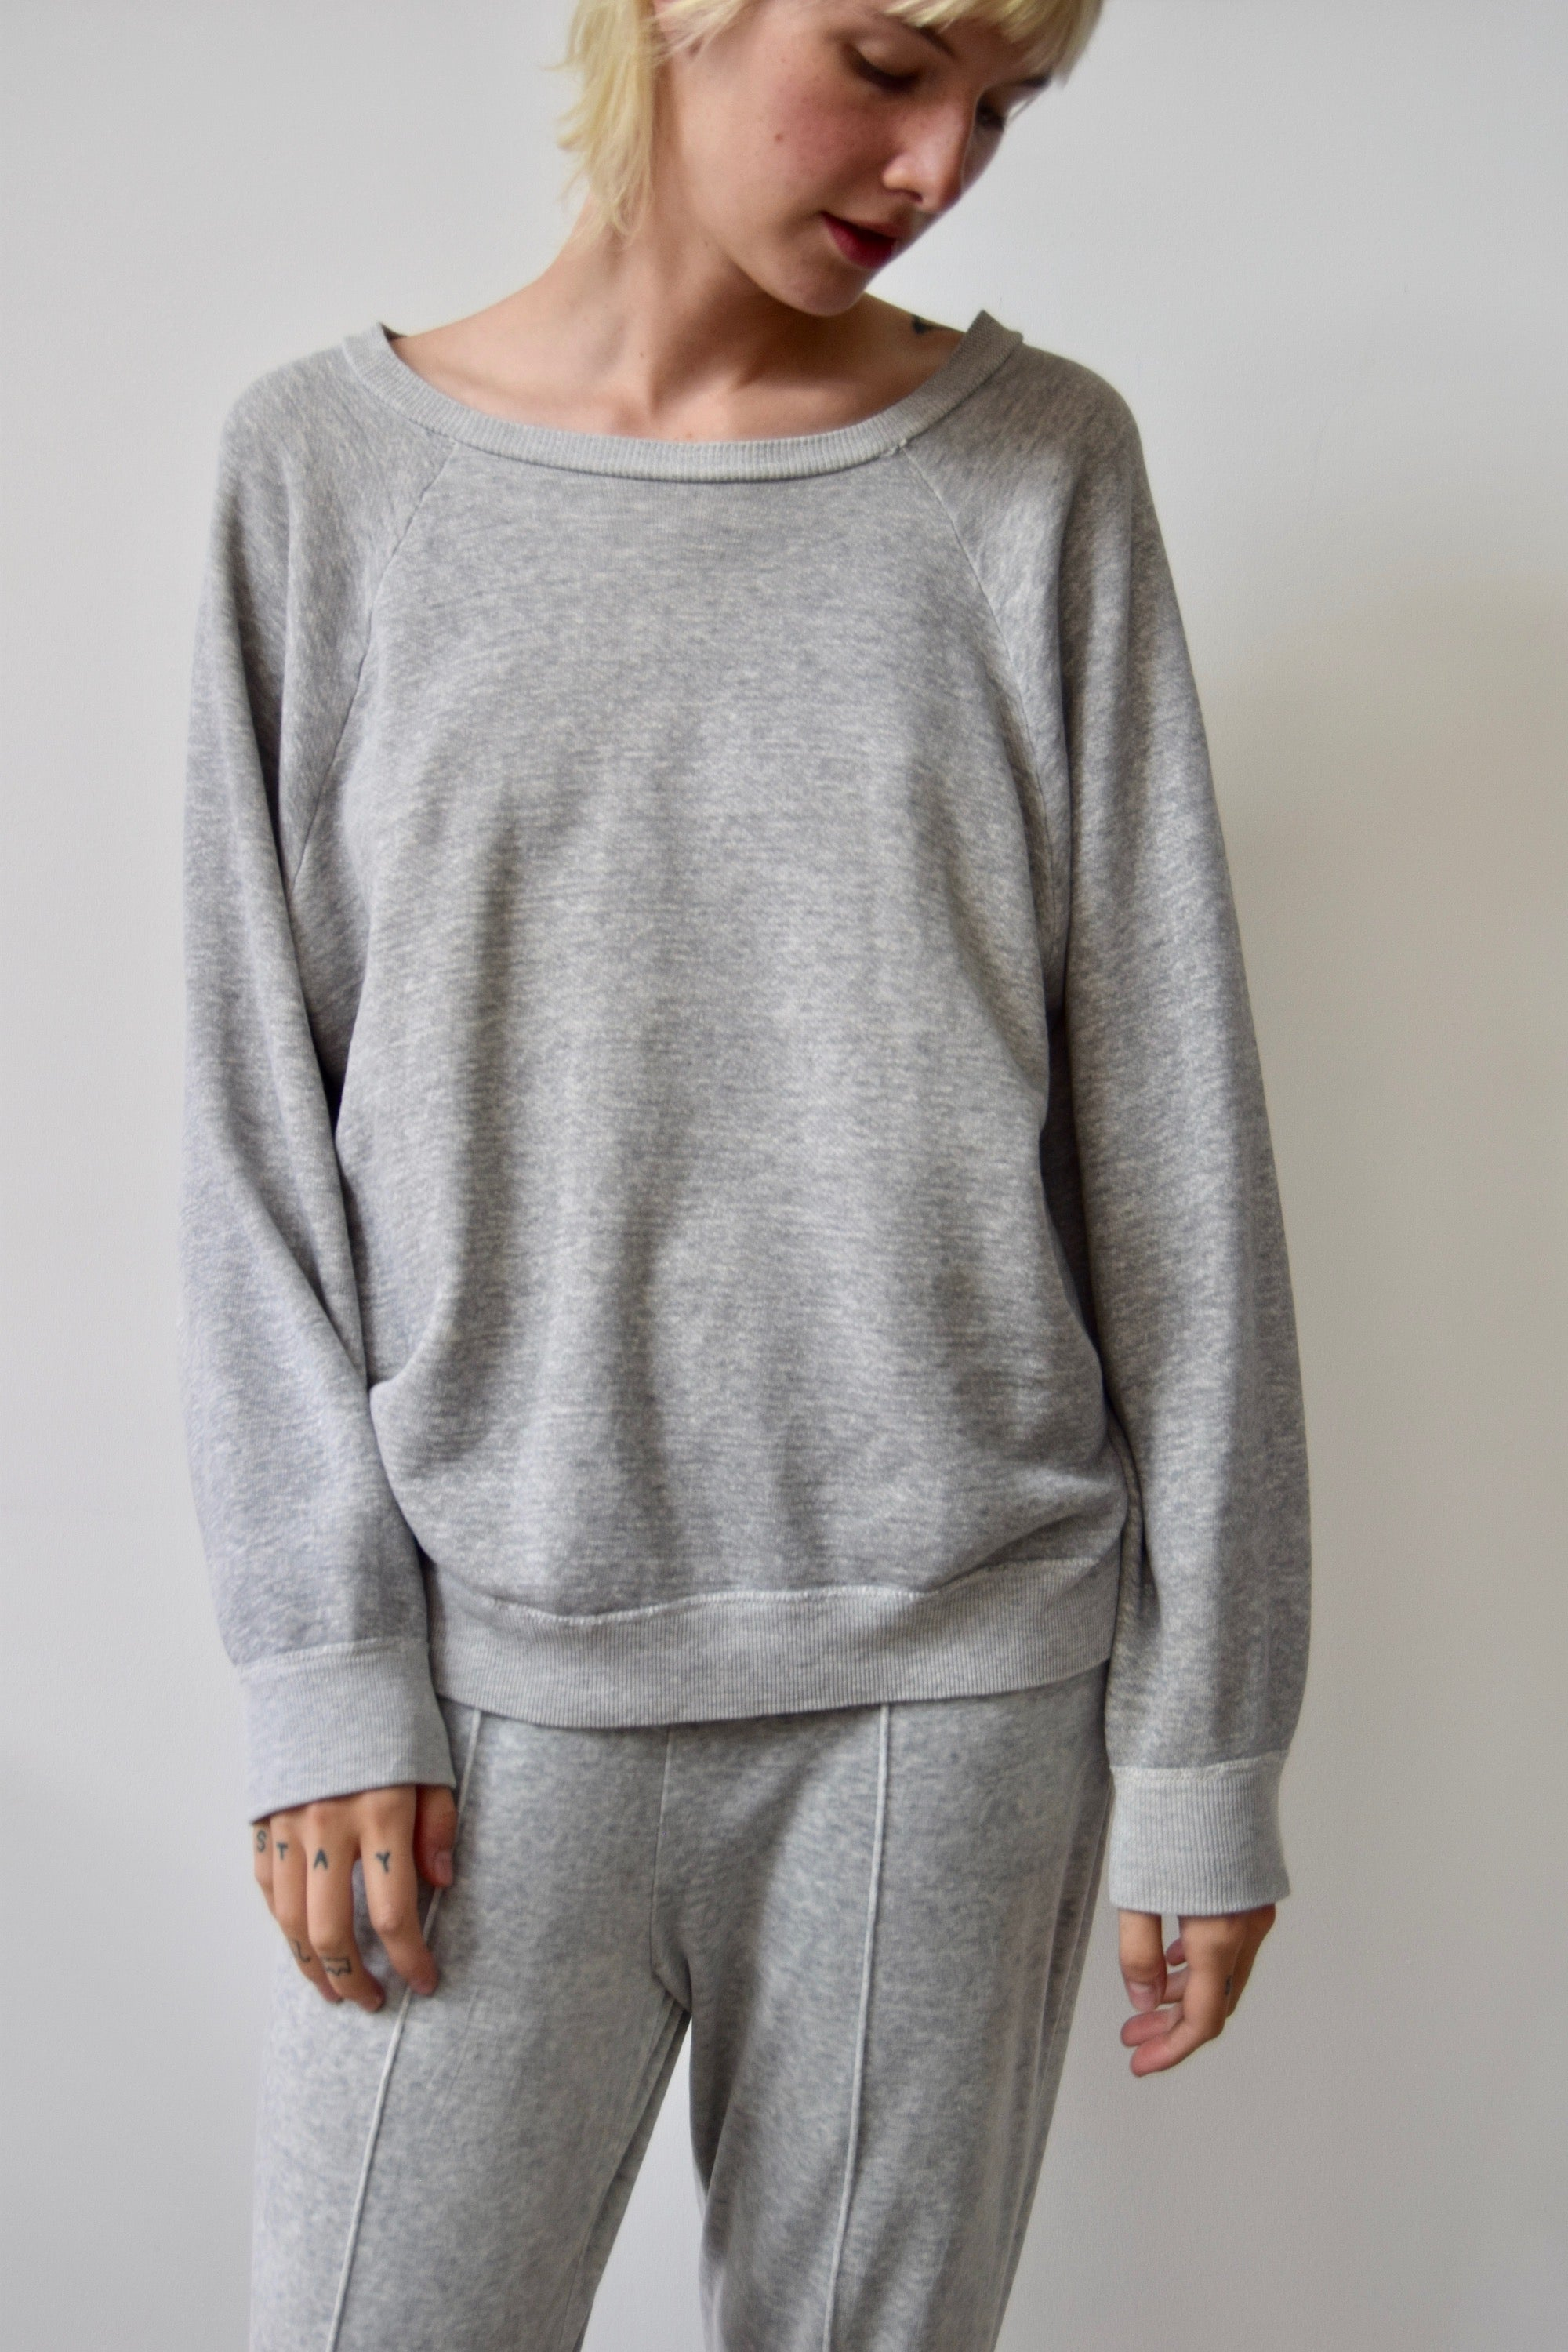 Vintage Grey Sweatshirt